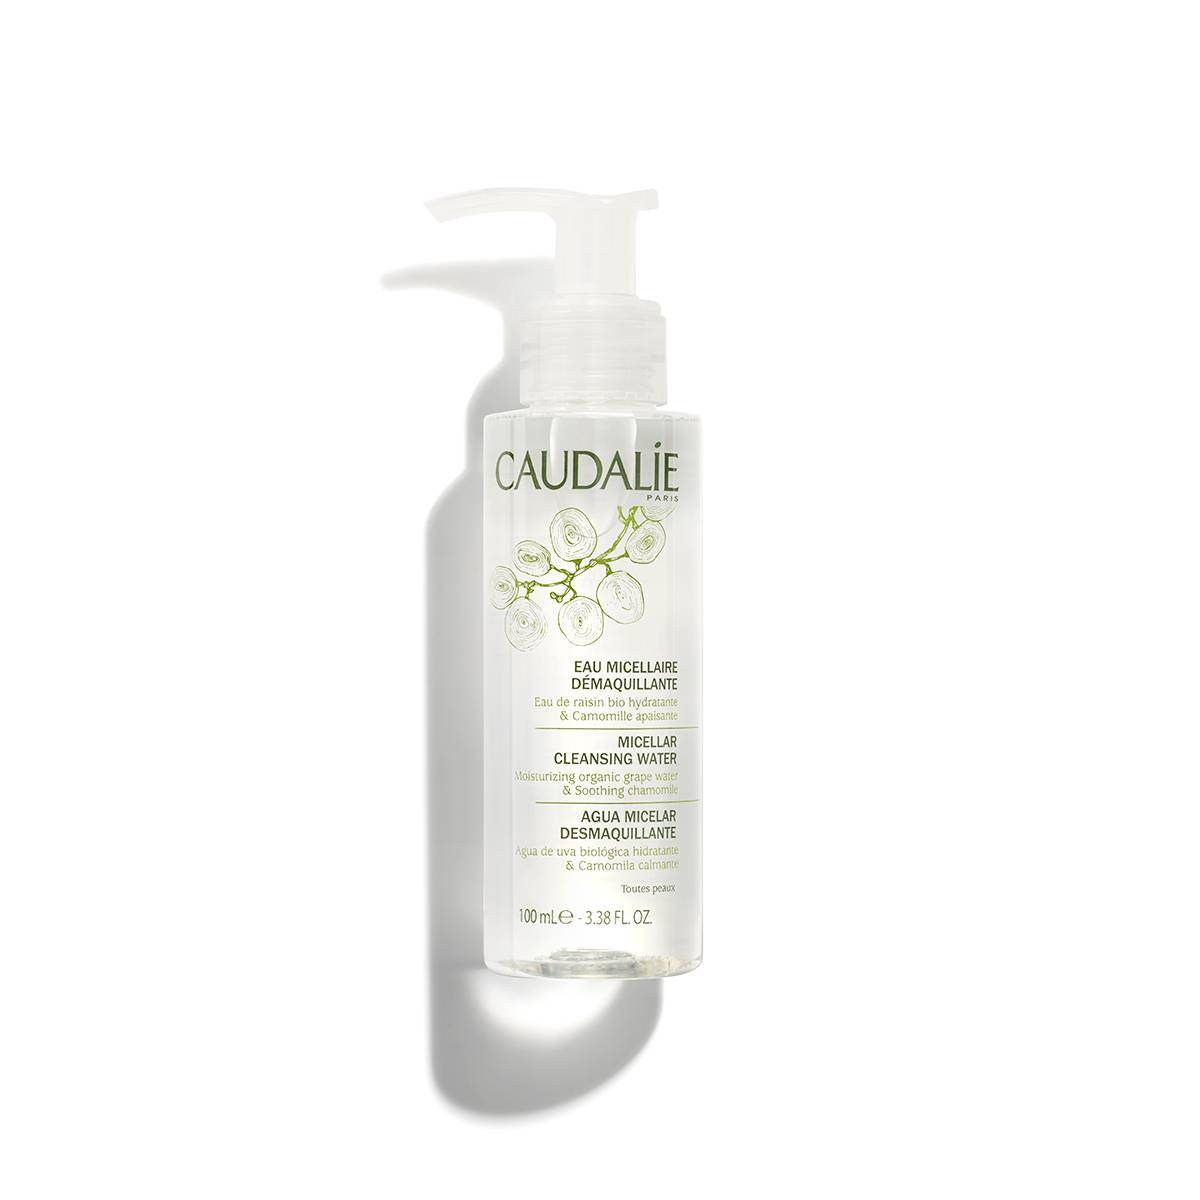 Micellar Cleansing Water - Travel Size